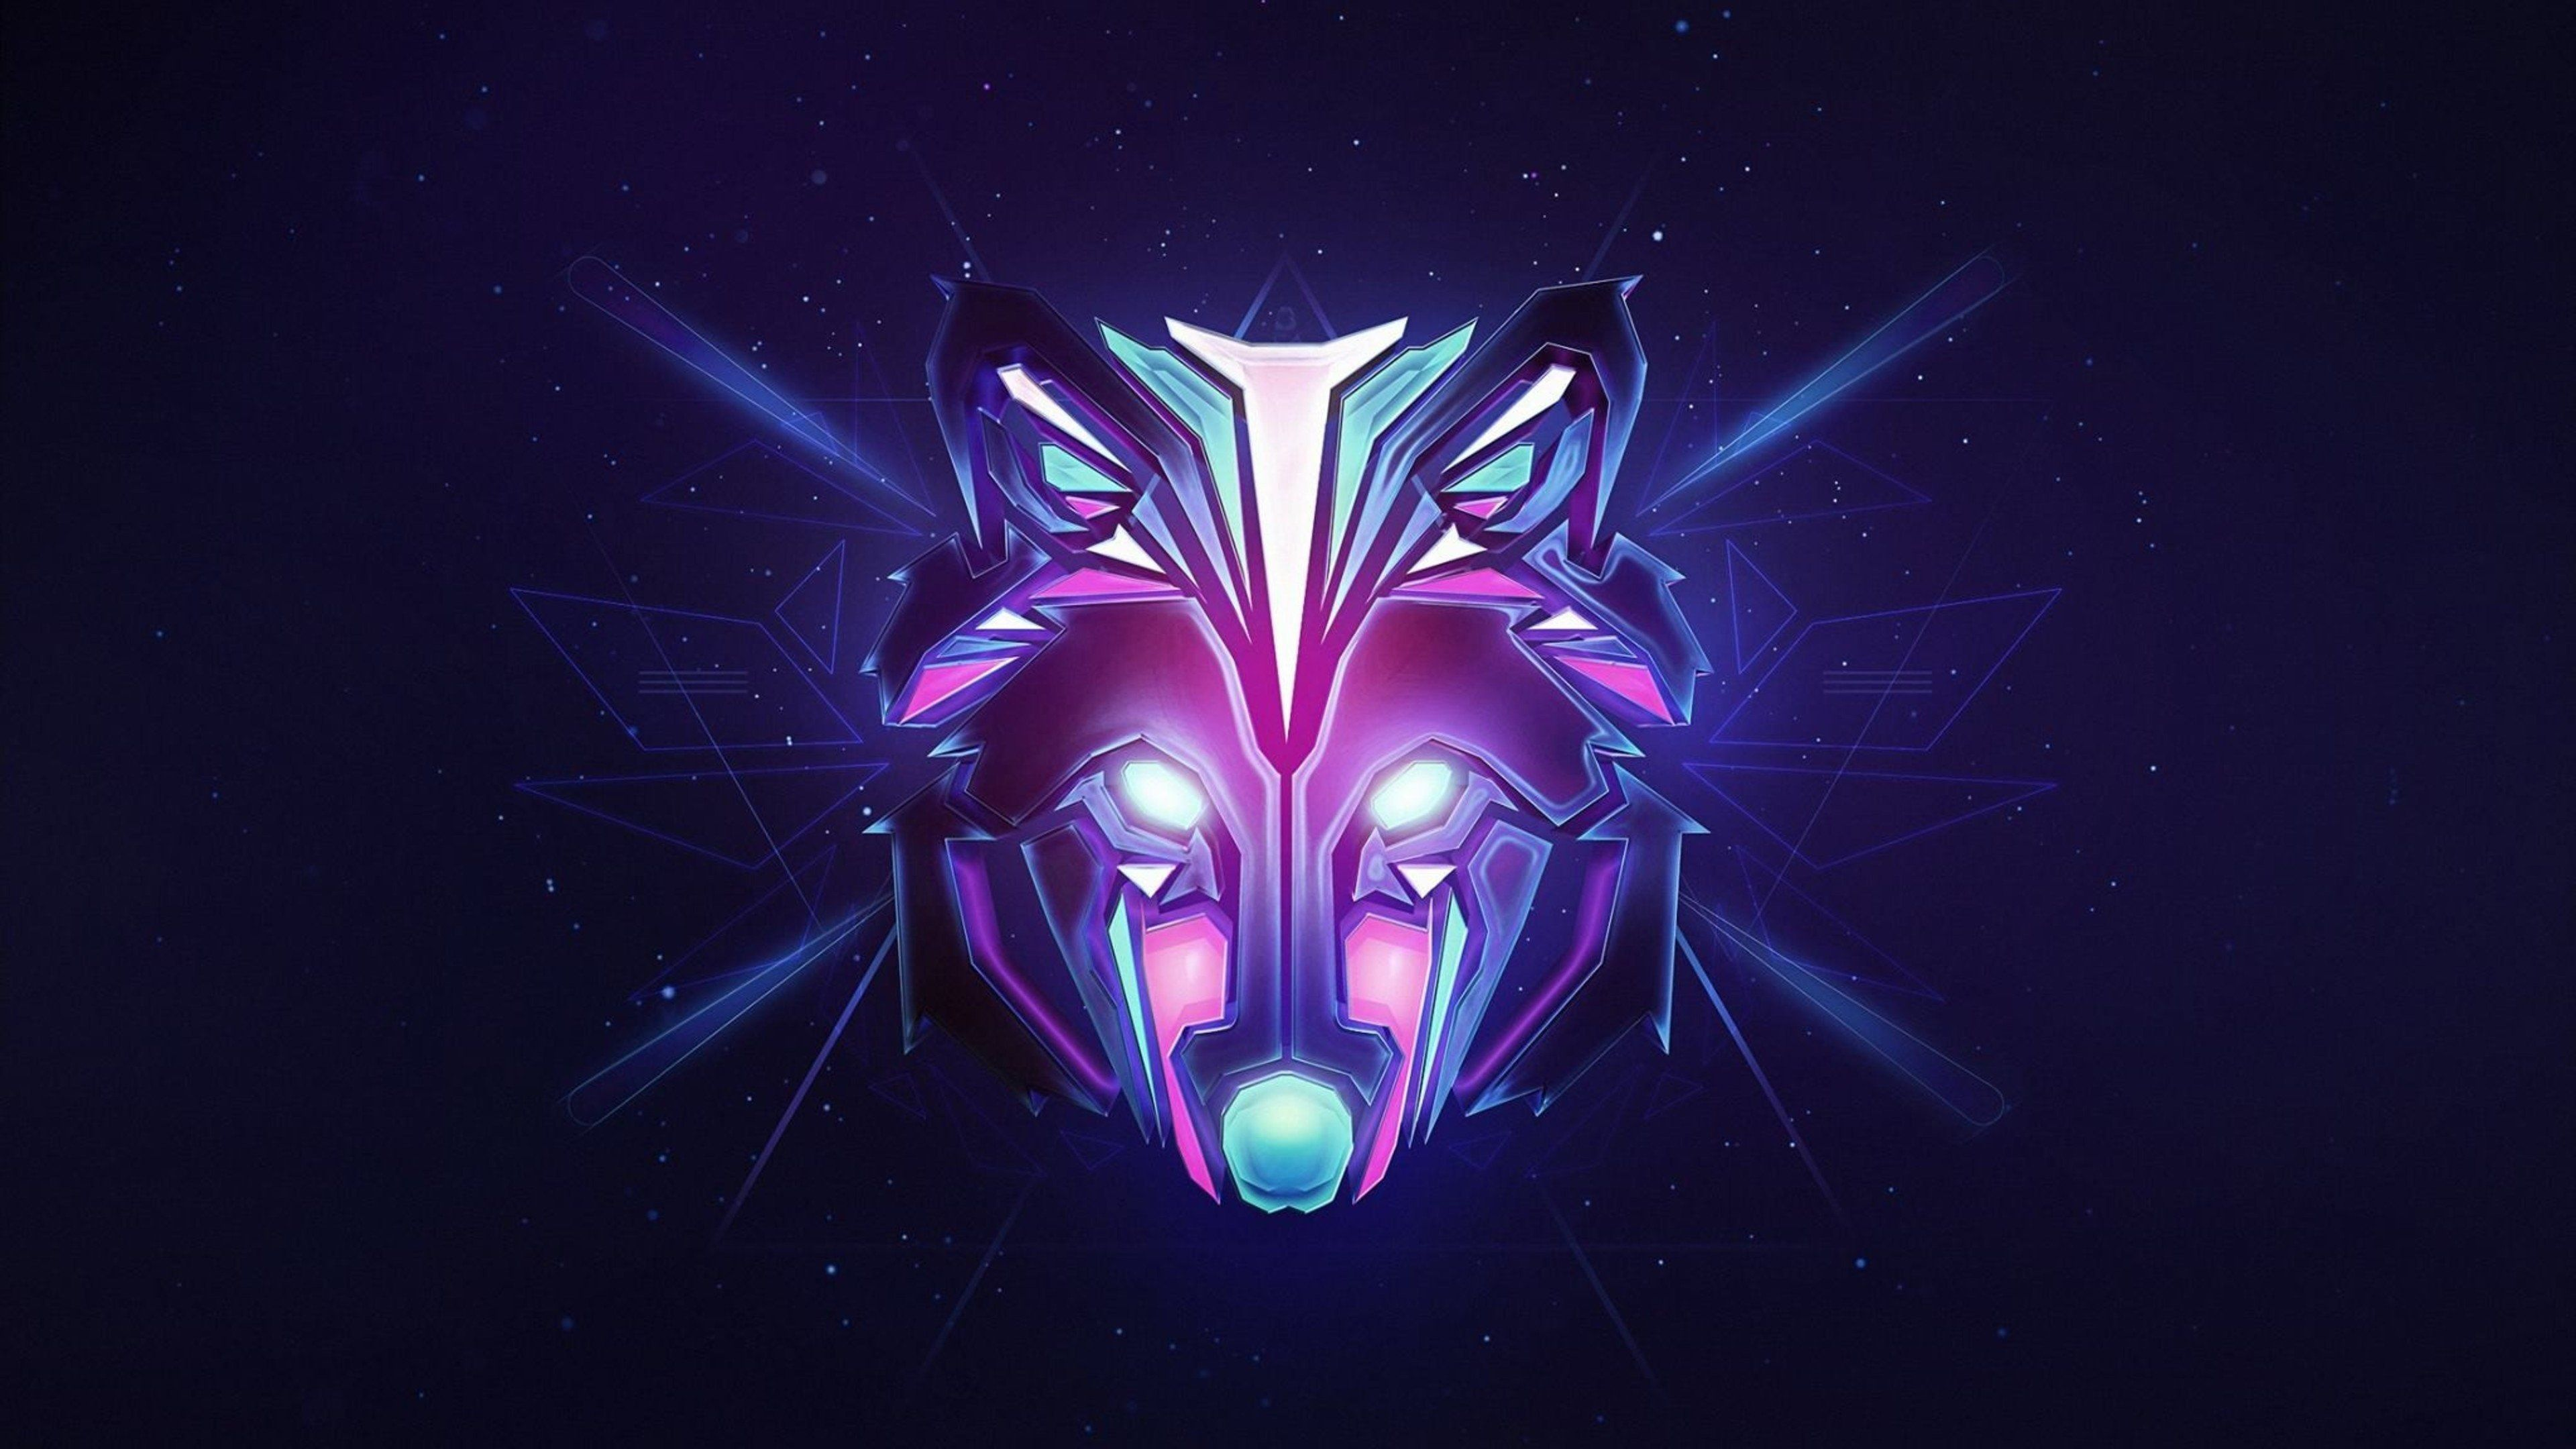 3840x2160 Wolf 4k Best Picture Ever Wolf Wallpaper Gaming Wallpapers 2048x1152 Wallpapers